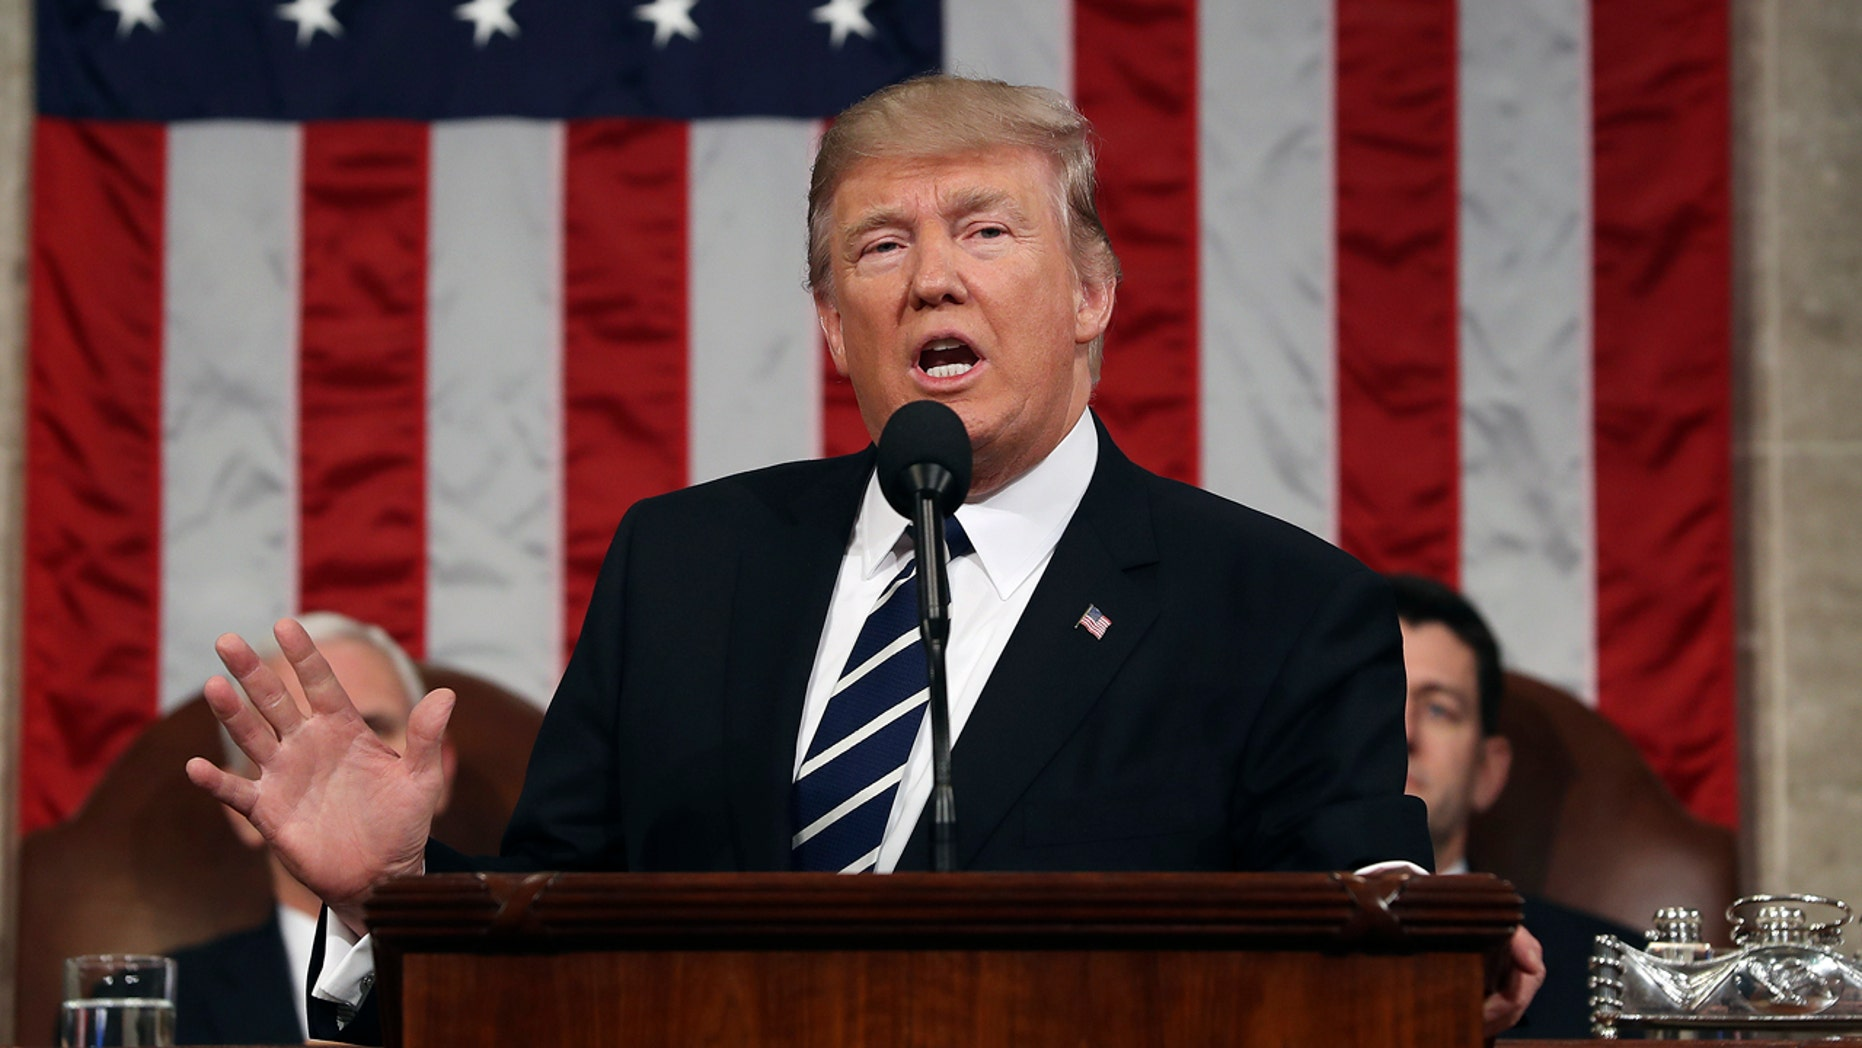 President Donald Trump speaks on Capitol Hill in Washington, Tuesday, Feb. 28, 2017, during his address to a joint session of Congress. (Jim Lo Scalzo/Pool Image via AP)